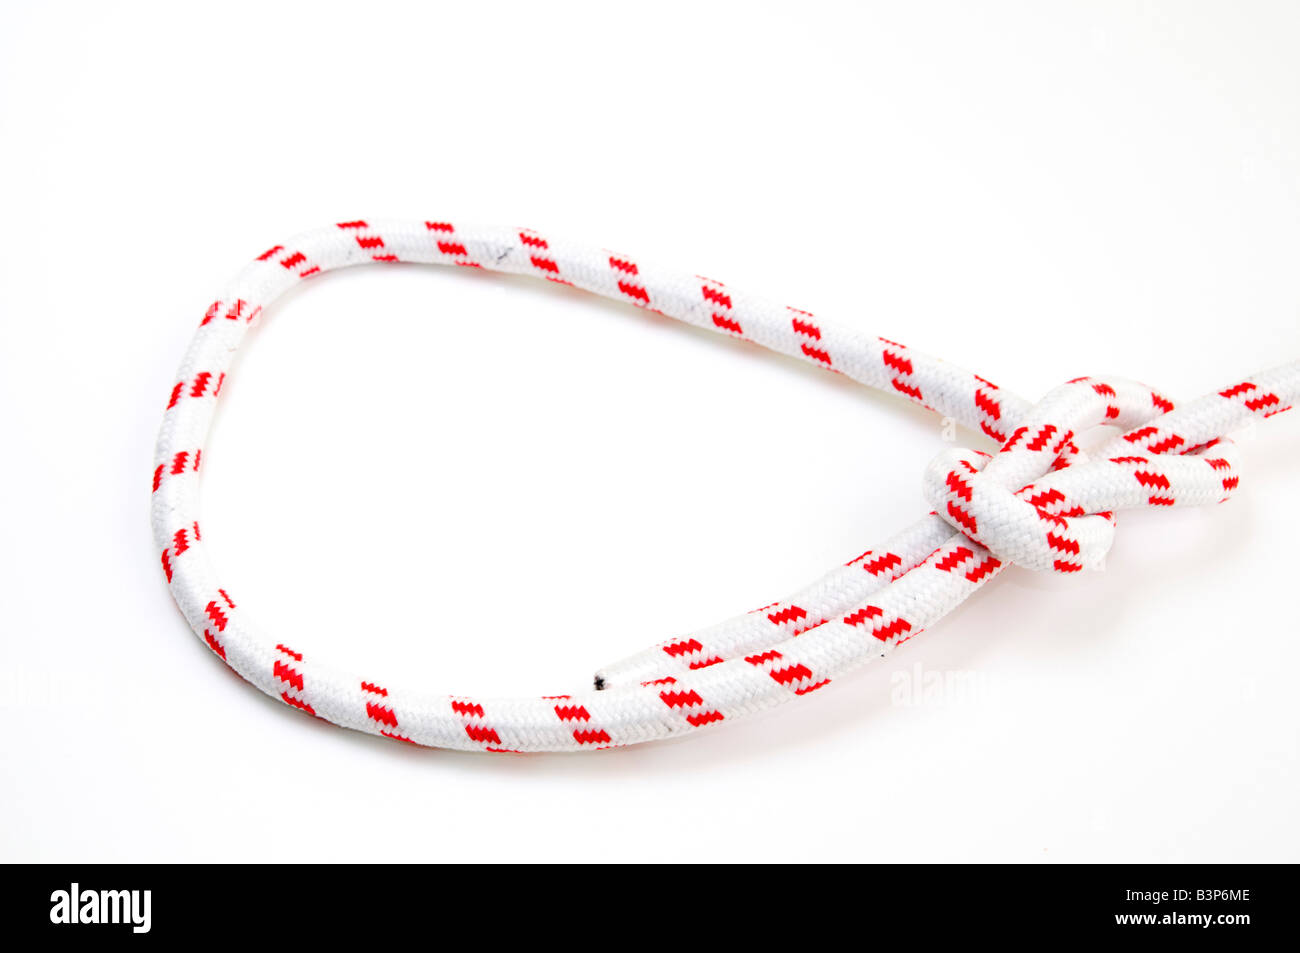 Sheet Bend Knot Stock Photos Images Alamy Bowline Diagram Of On White Background One The Most Used Loop Knots Image